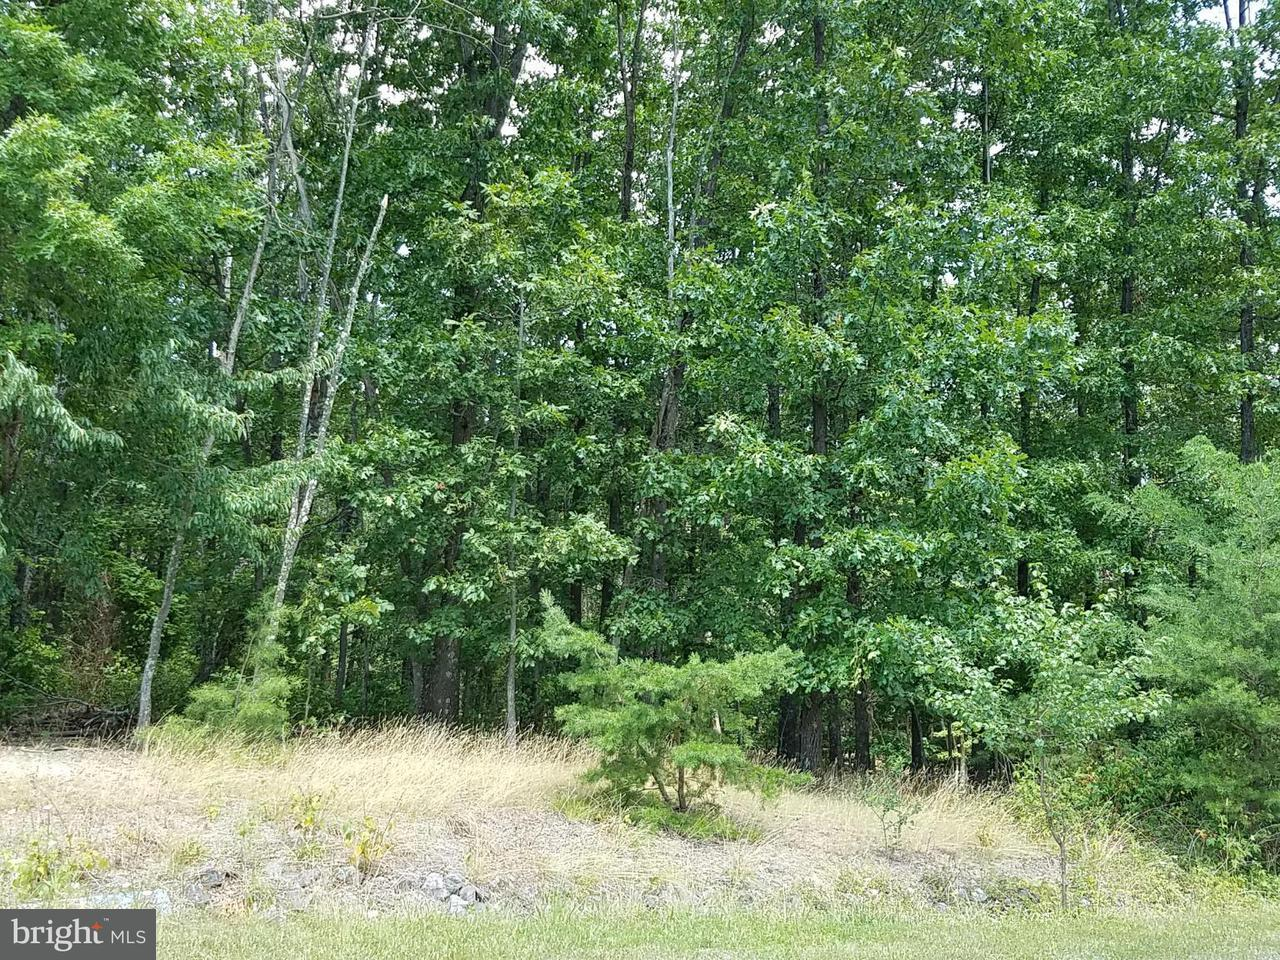 Additional photo for property listing at 11 Husk Trl  Berkeley Springs, West Virginia 25411 United States